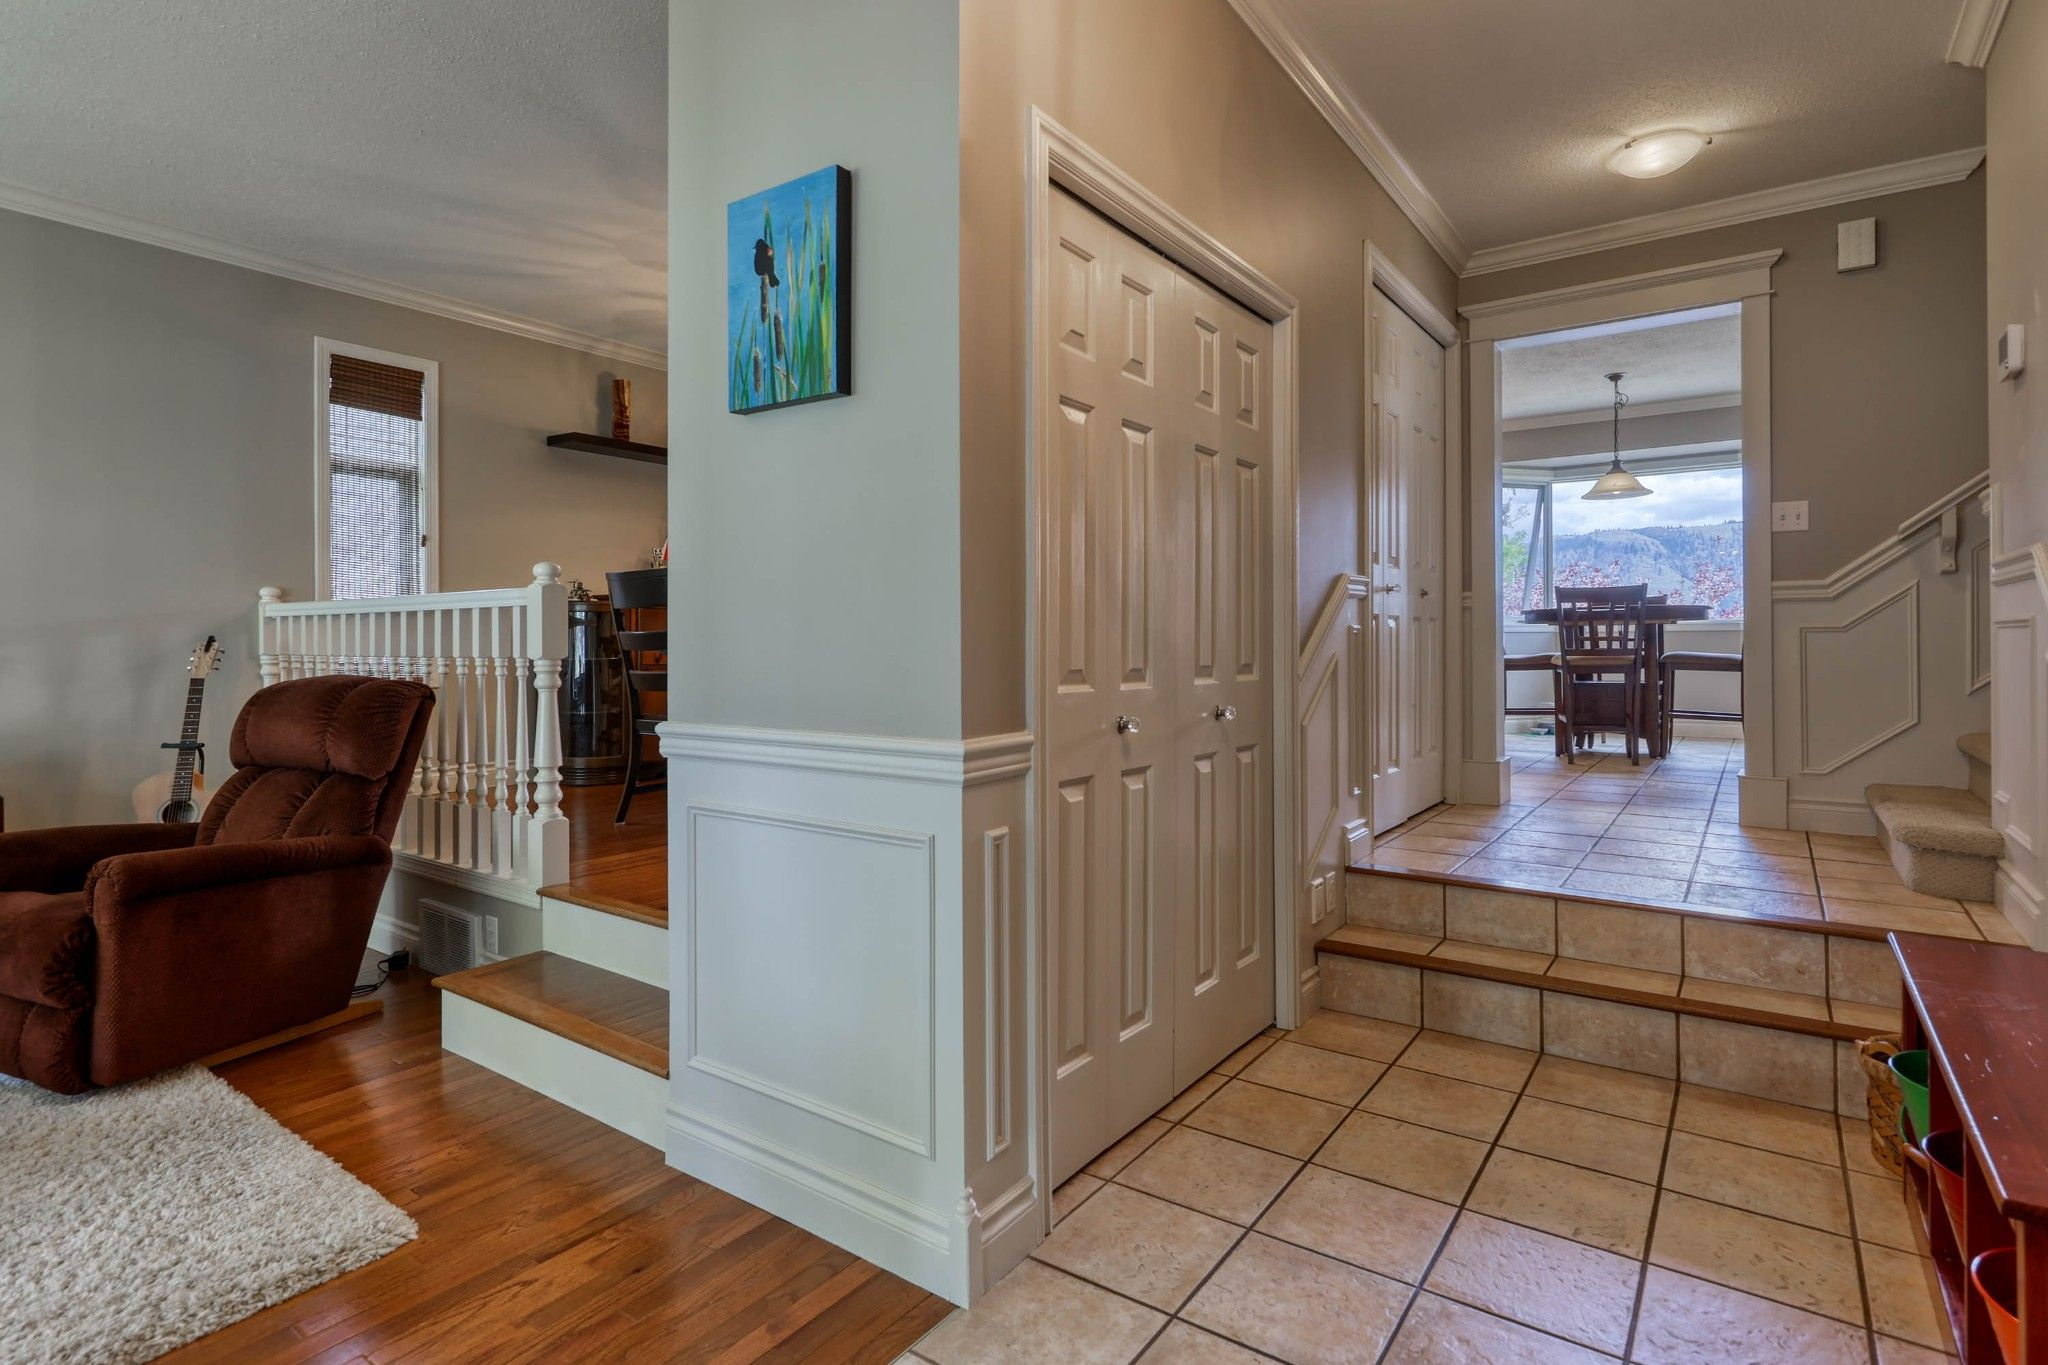 Photo 6: Photos: 2816 Capilano Drive in Kamloops: Juniper Heights House for sale : MLS®# 162002